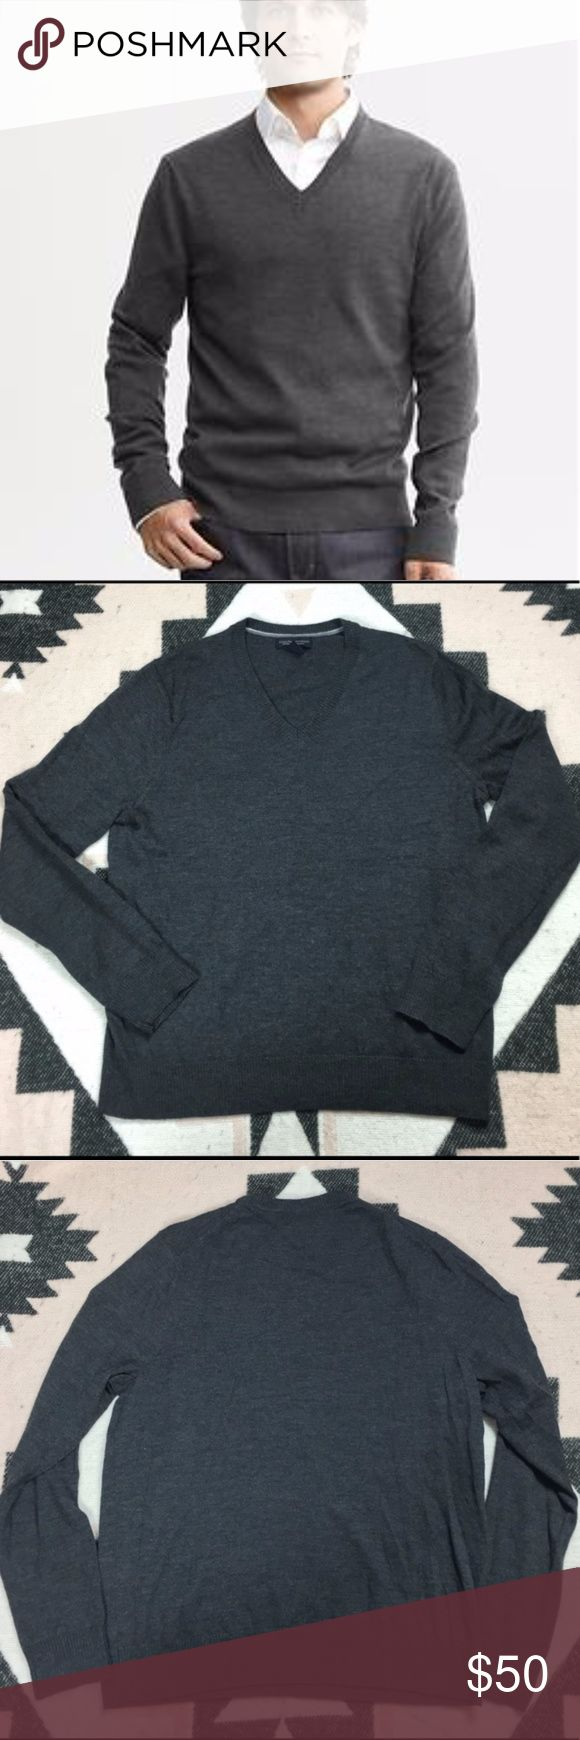 BR Charcoal Gray 100% Merino Wool Vee Pullover L This exceptional quality Merino wool is comfortable, soft and wrinkle resistant, produced by one of the most respected mills in Italy. A natural temperature regulator, it's the stylish choice for any kind of weather.  V-neck Long sleeves Rib-knit collar, sleeve and hem Rib-knit accent at shoulders Straight hem 100% extra-fine Merino wool Dry clean Imported  Size L  Length 29 Arms 27.5 Armpit to Armpit 23.5 Banana Republic Sweaters V-Neck